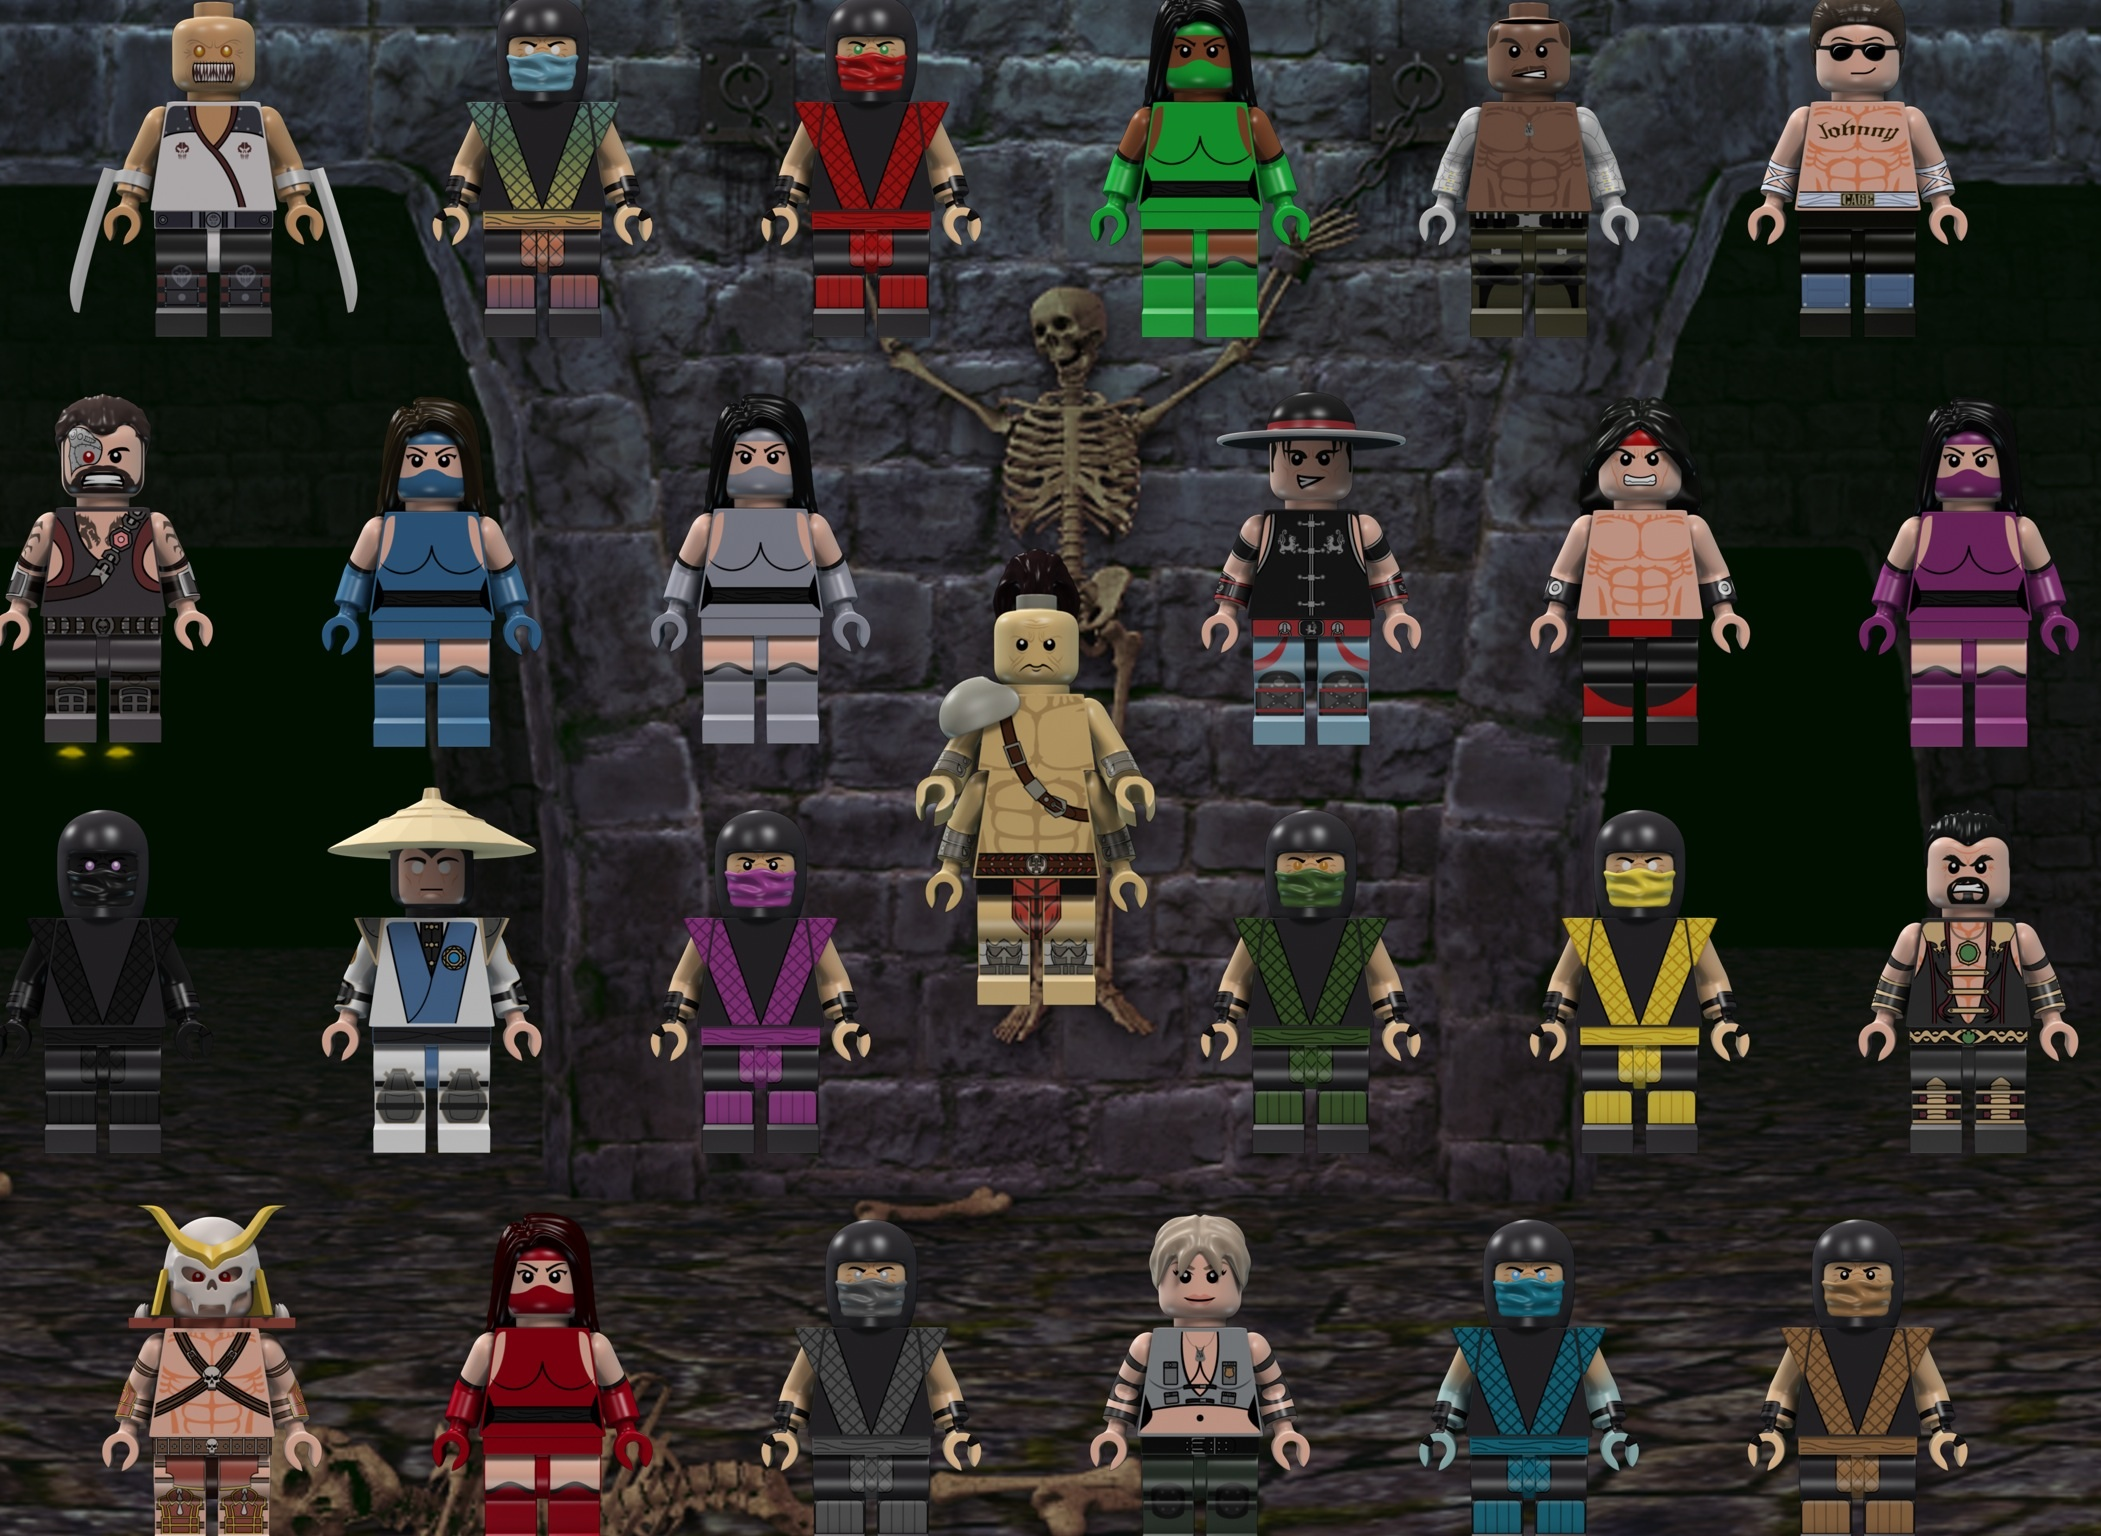 LEGO Mortal Kombat:The Video Game